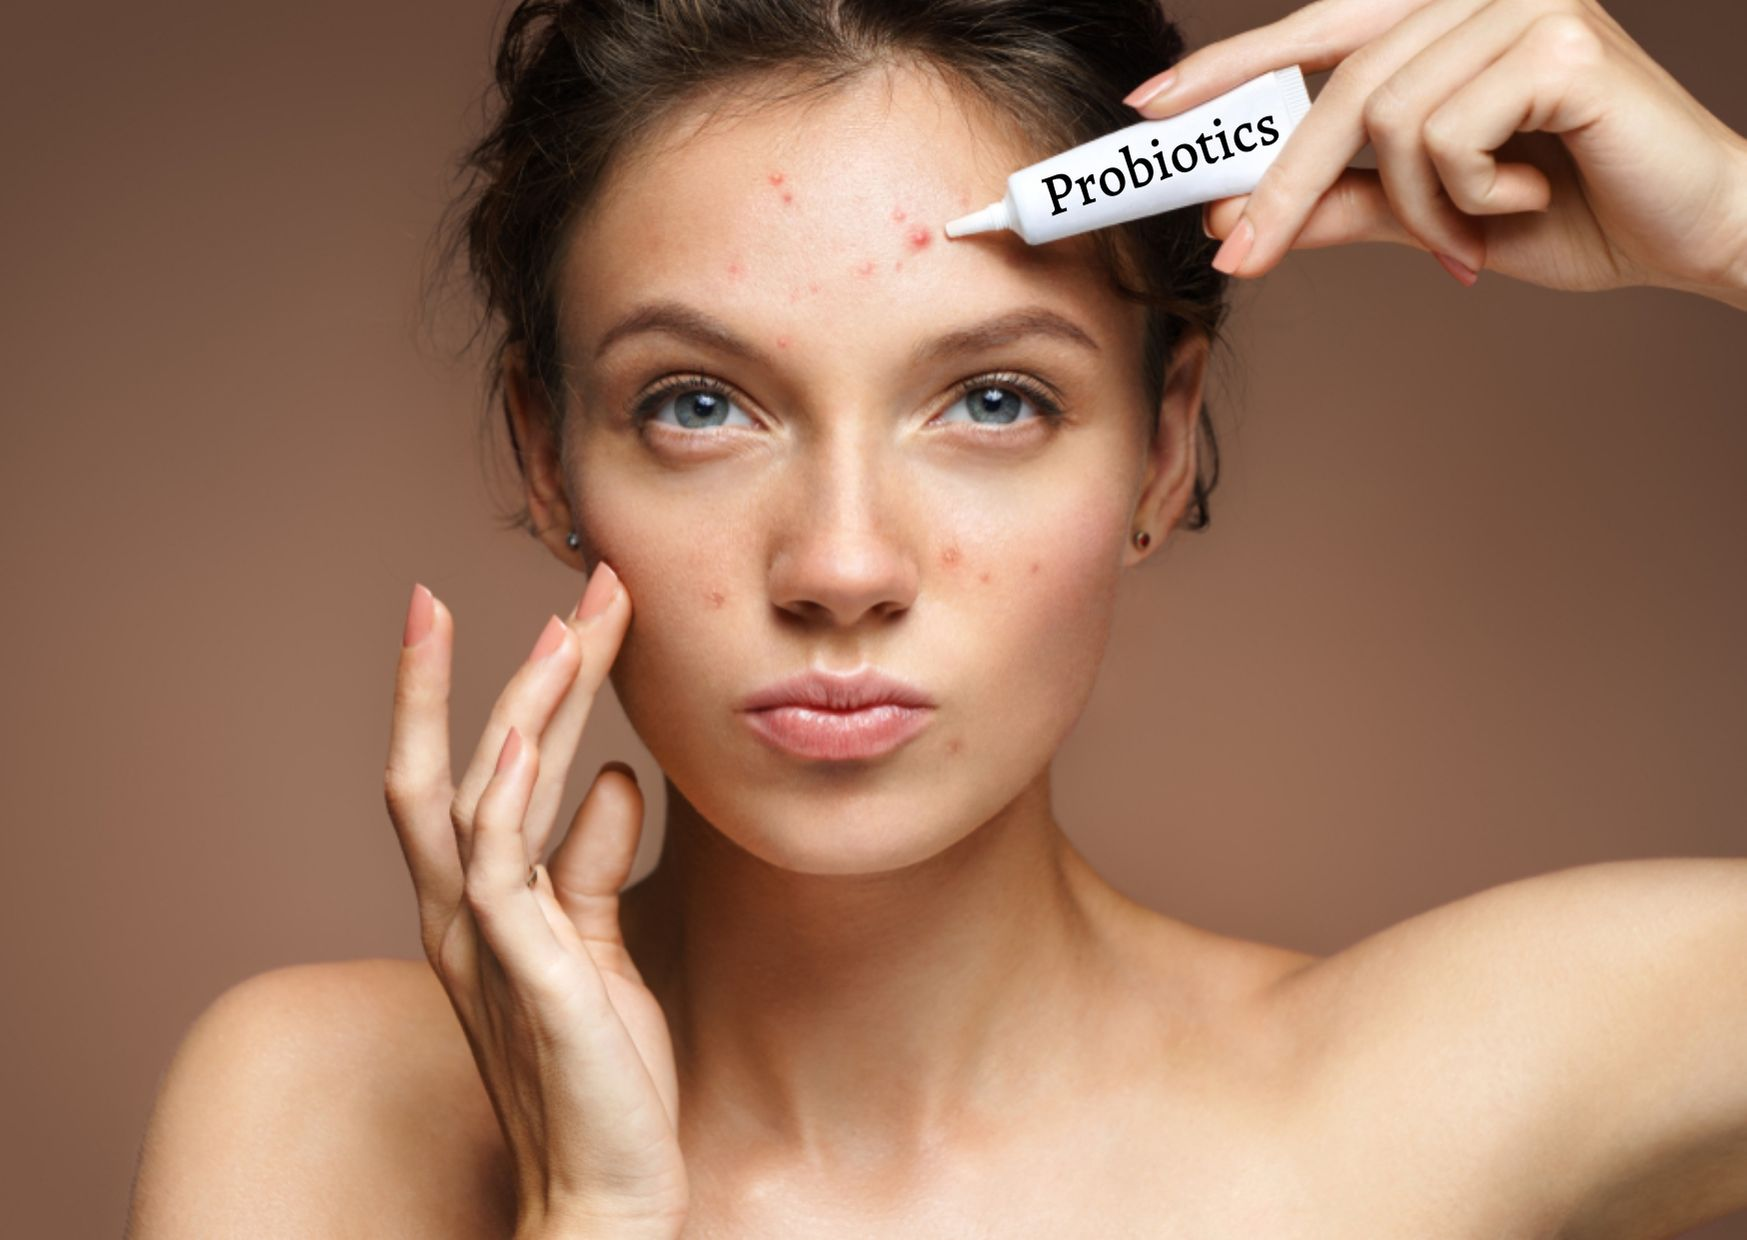 How Probiotics can fight acne and improve gut health